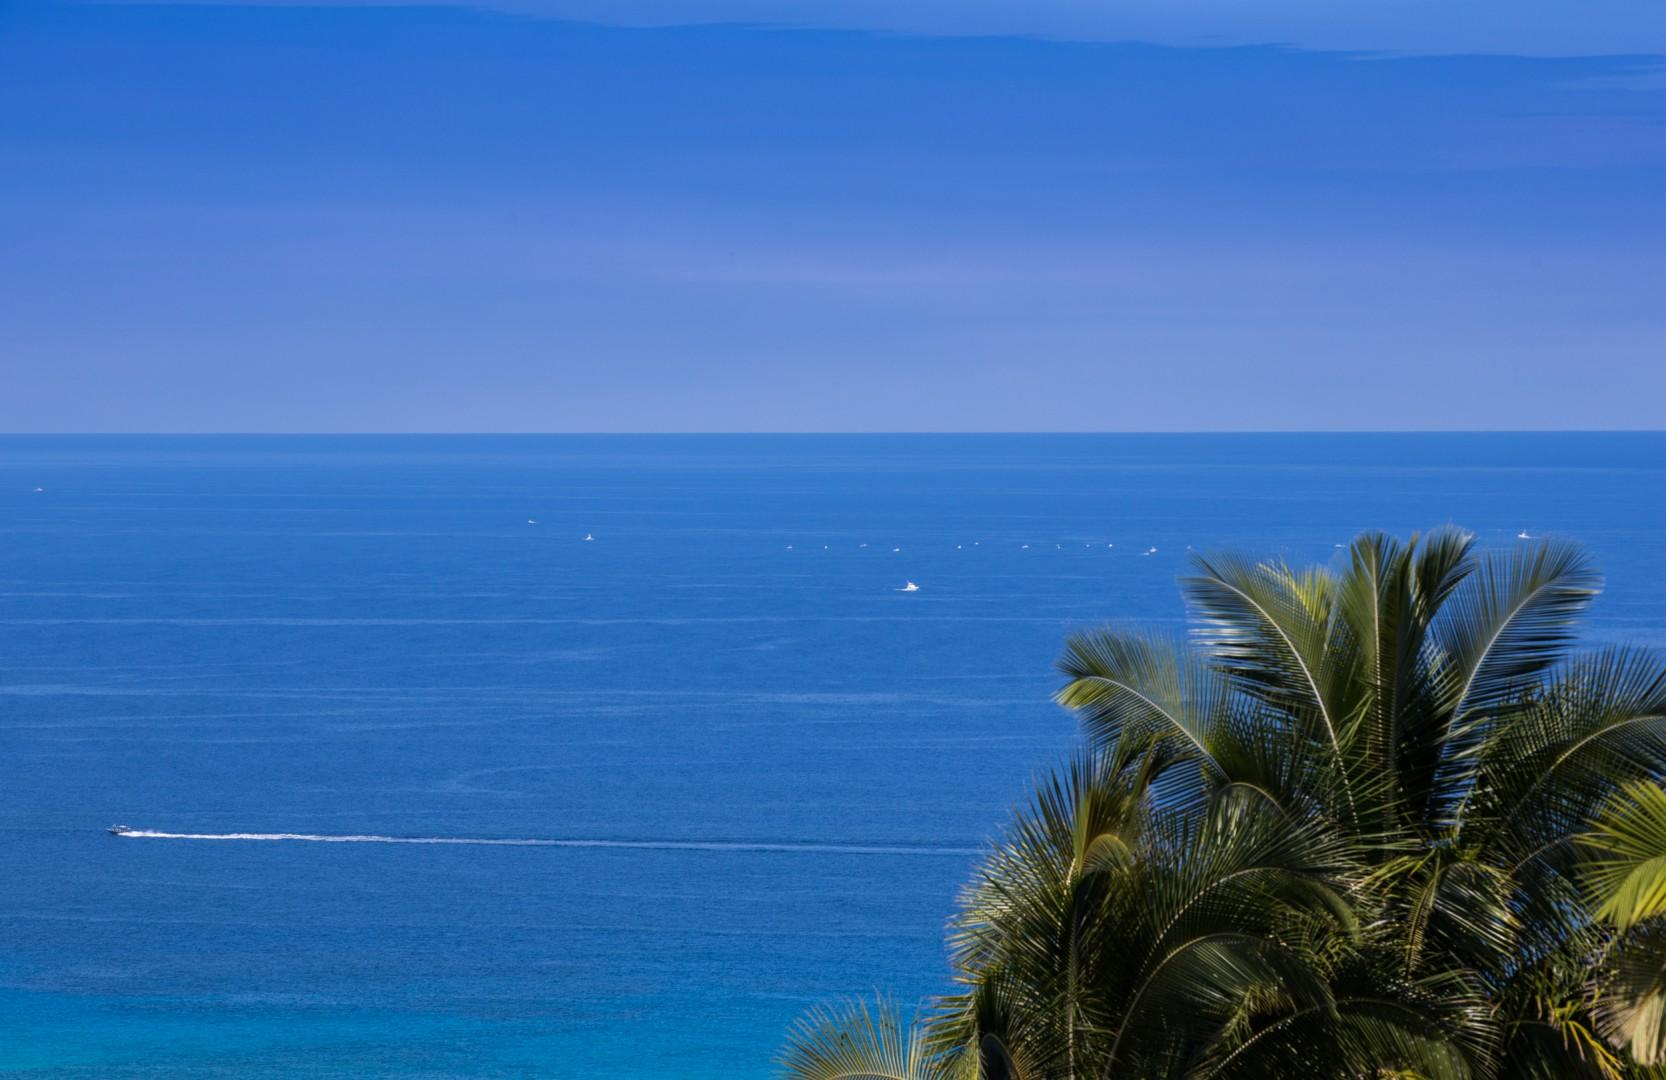 The blue waters of the Pacific.